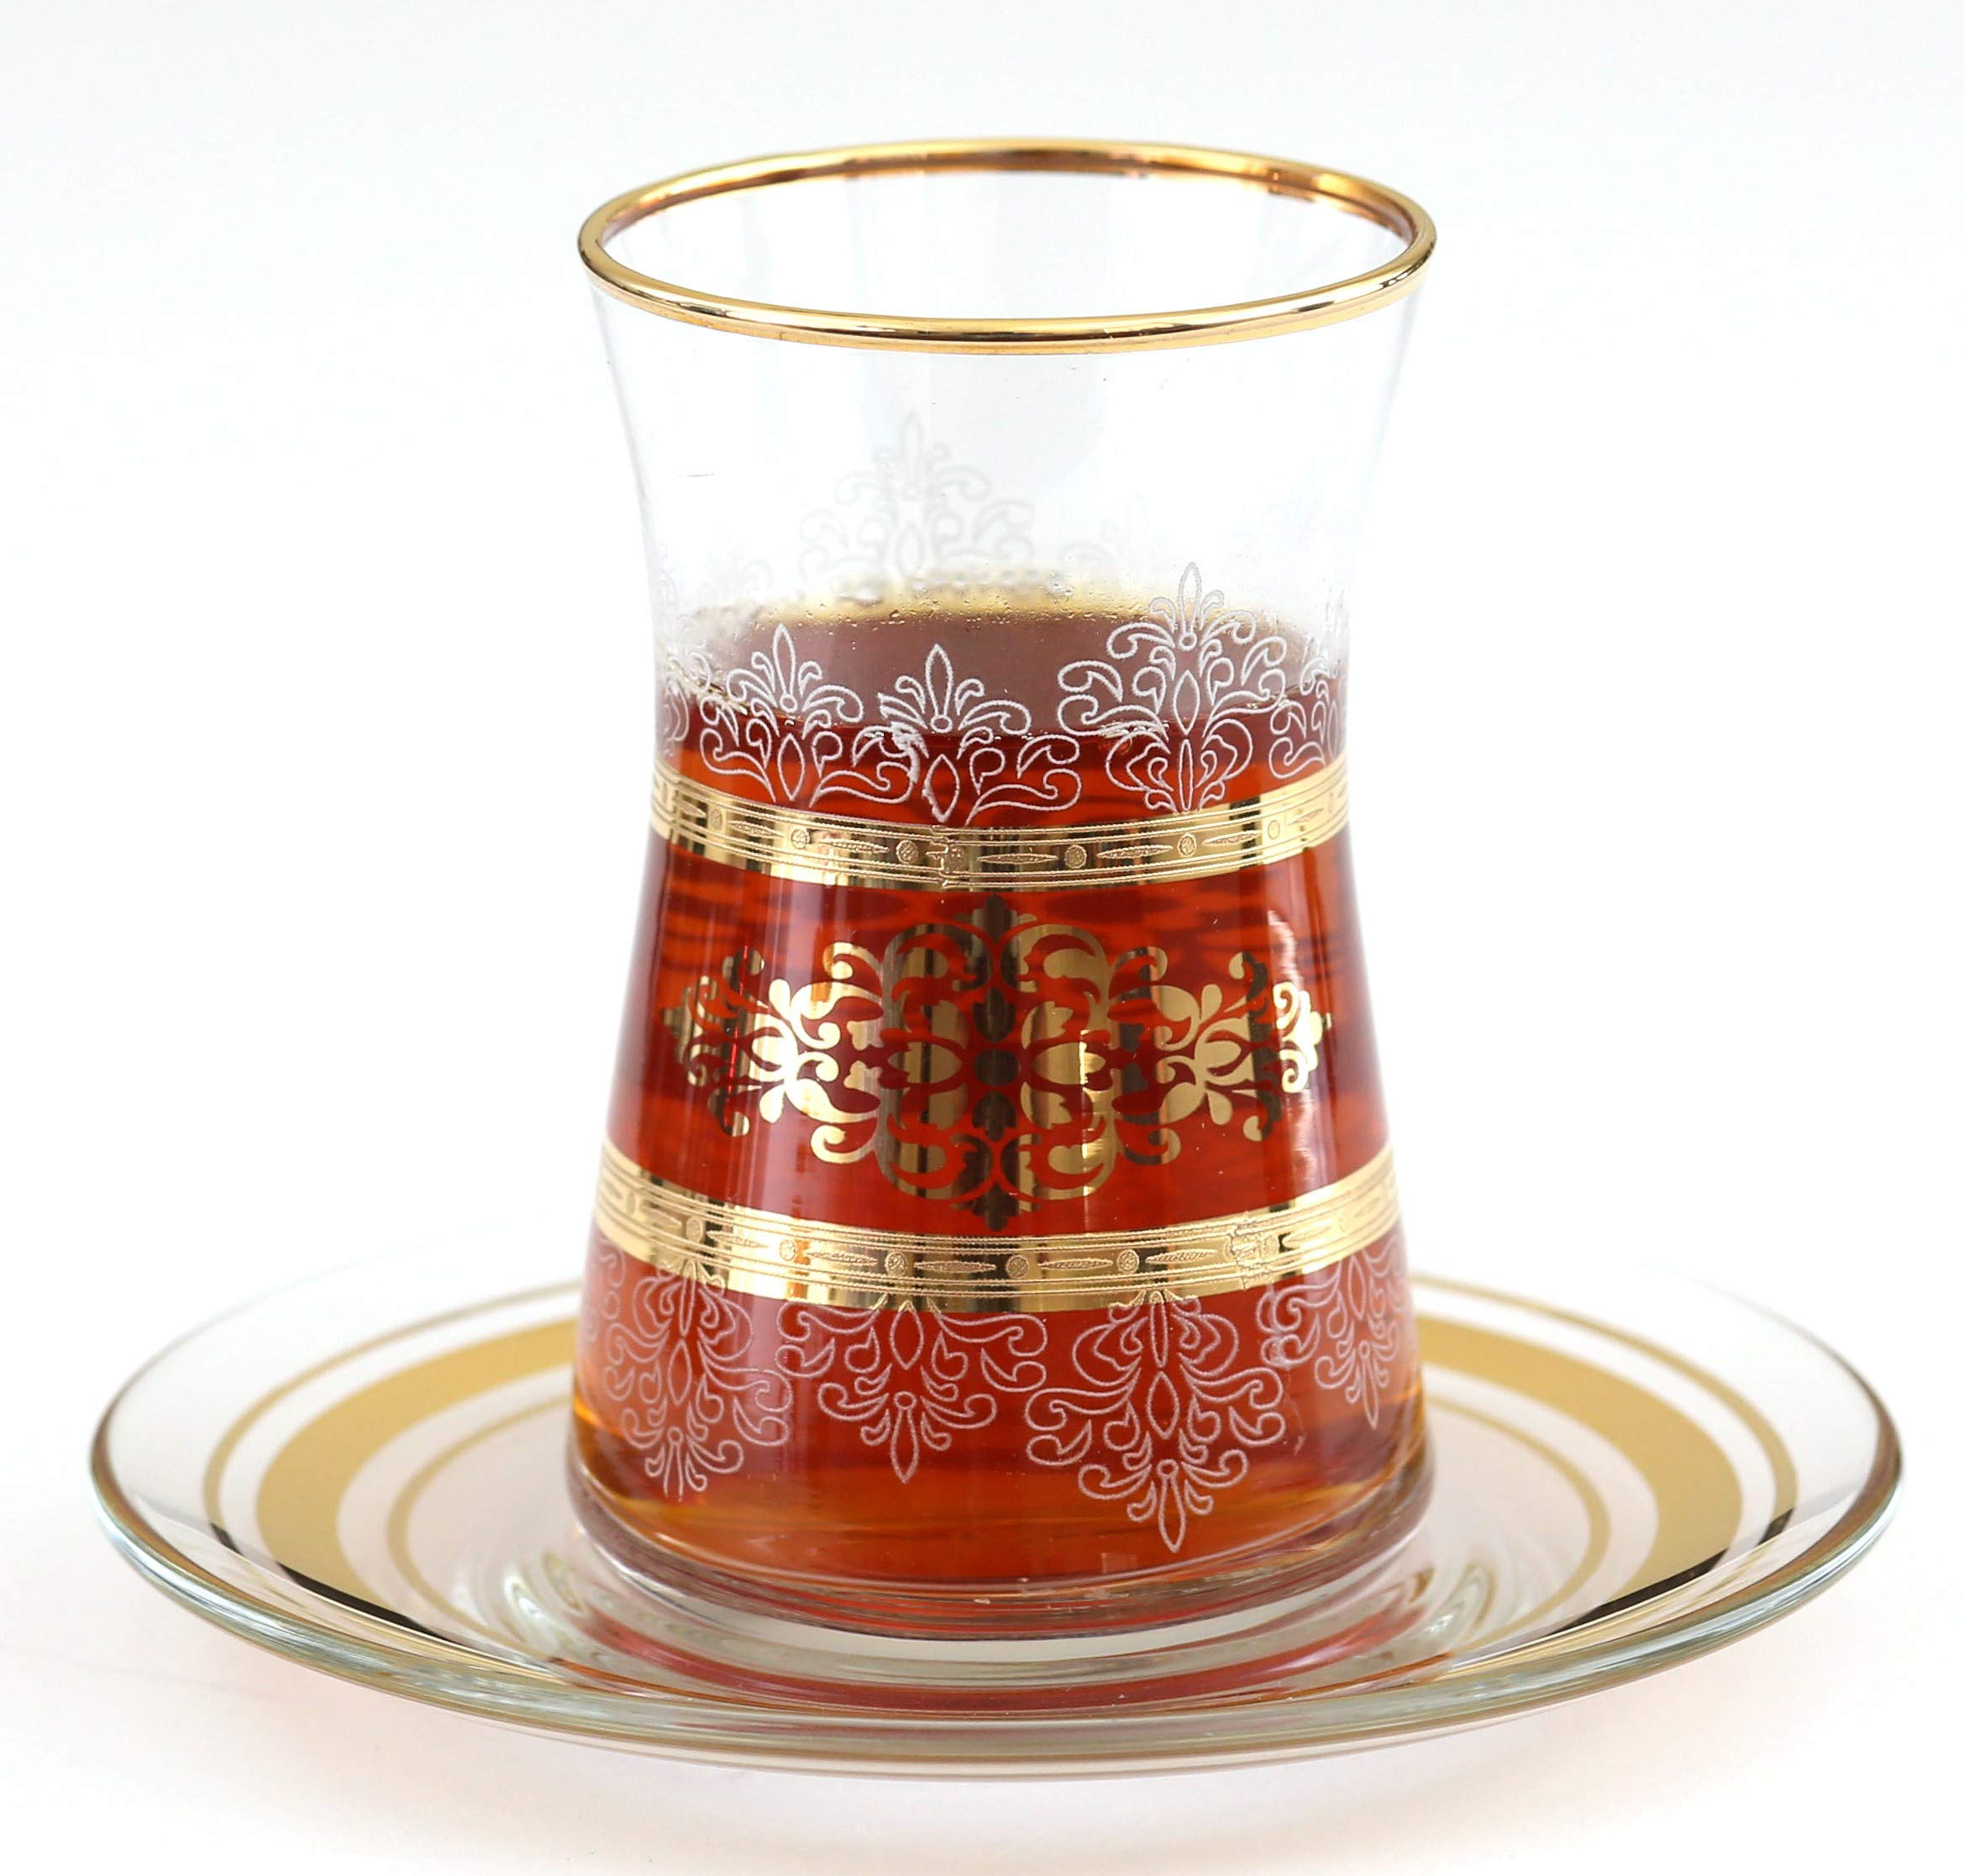 Top Quality Trim Desgin Gold Plated Turkish Arabic Tea Glasses with Saucers Set of 6-Masal